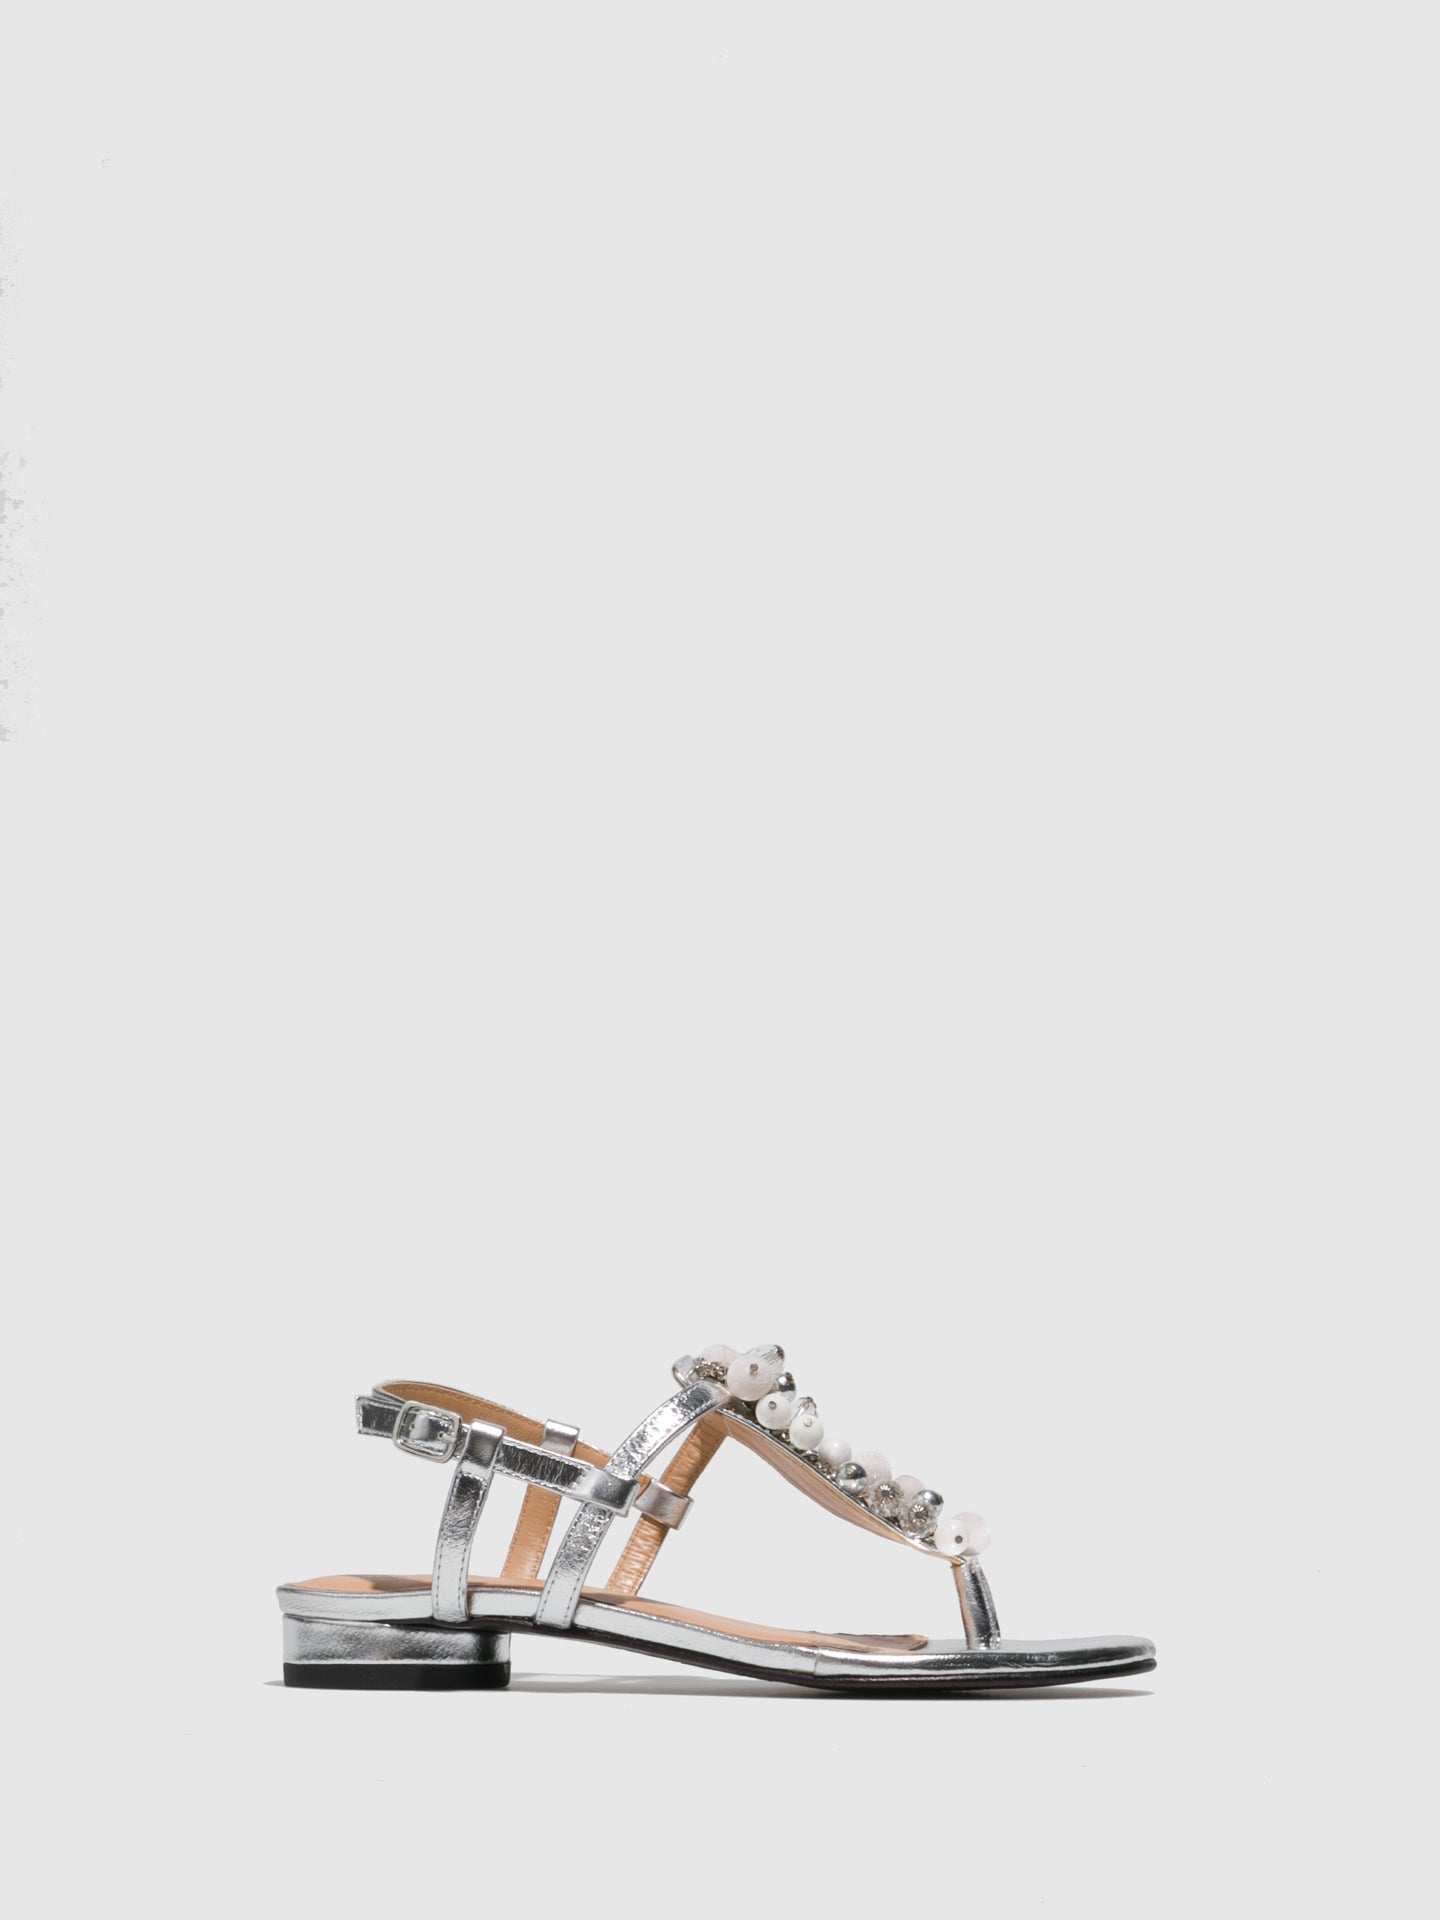 Parodi Sunshine Silver Appliqués Sandals